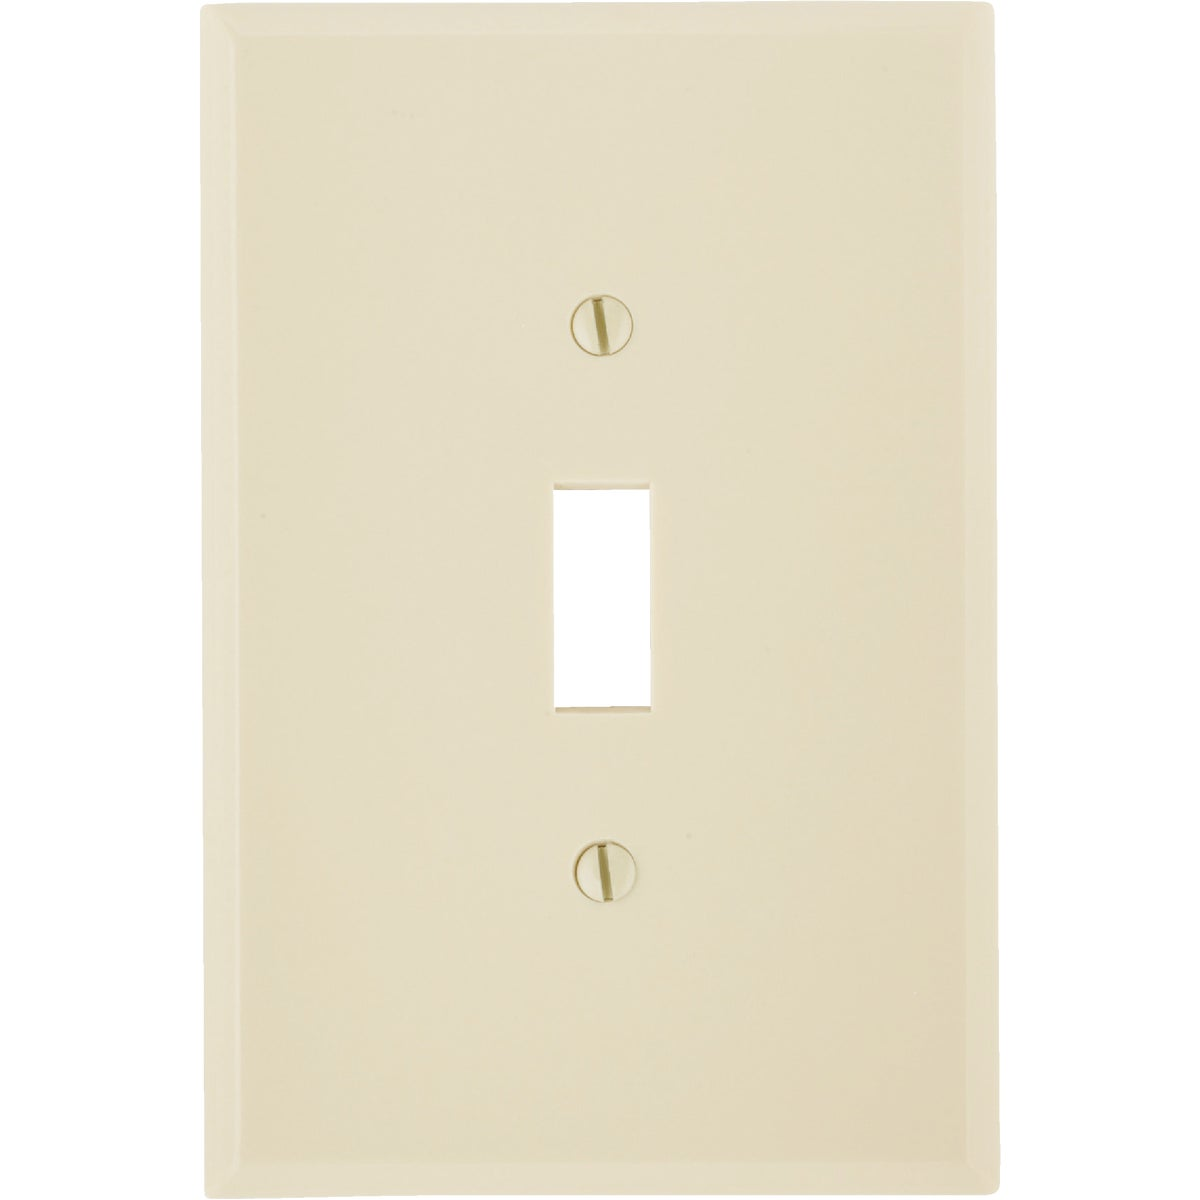 IV 1-TOGGLE WALL PLATE - 86101I by Leviton Mfg Co